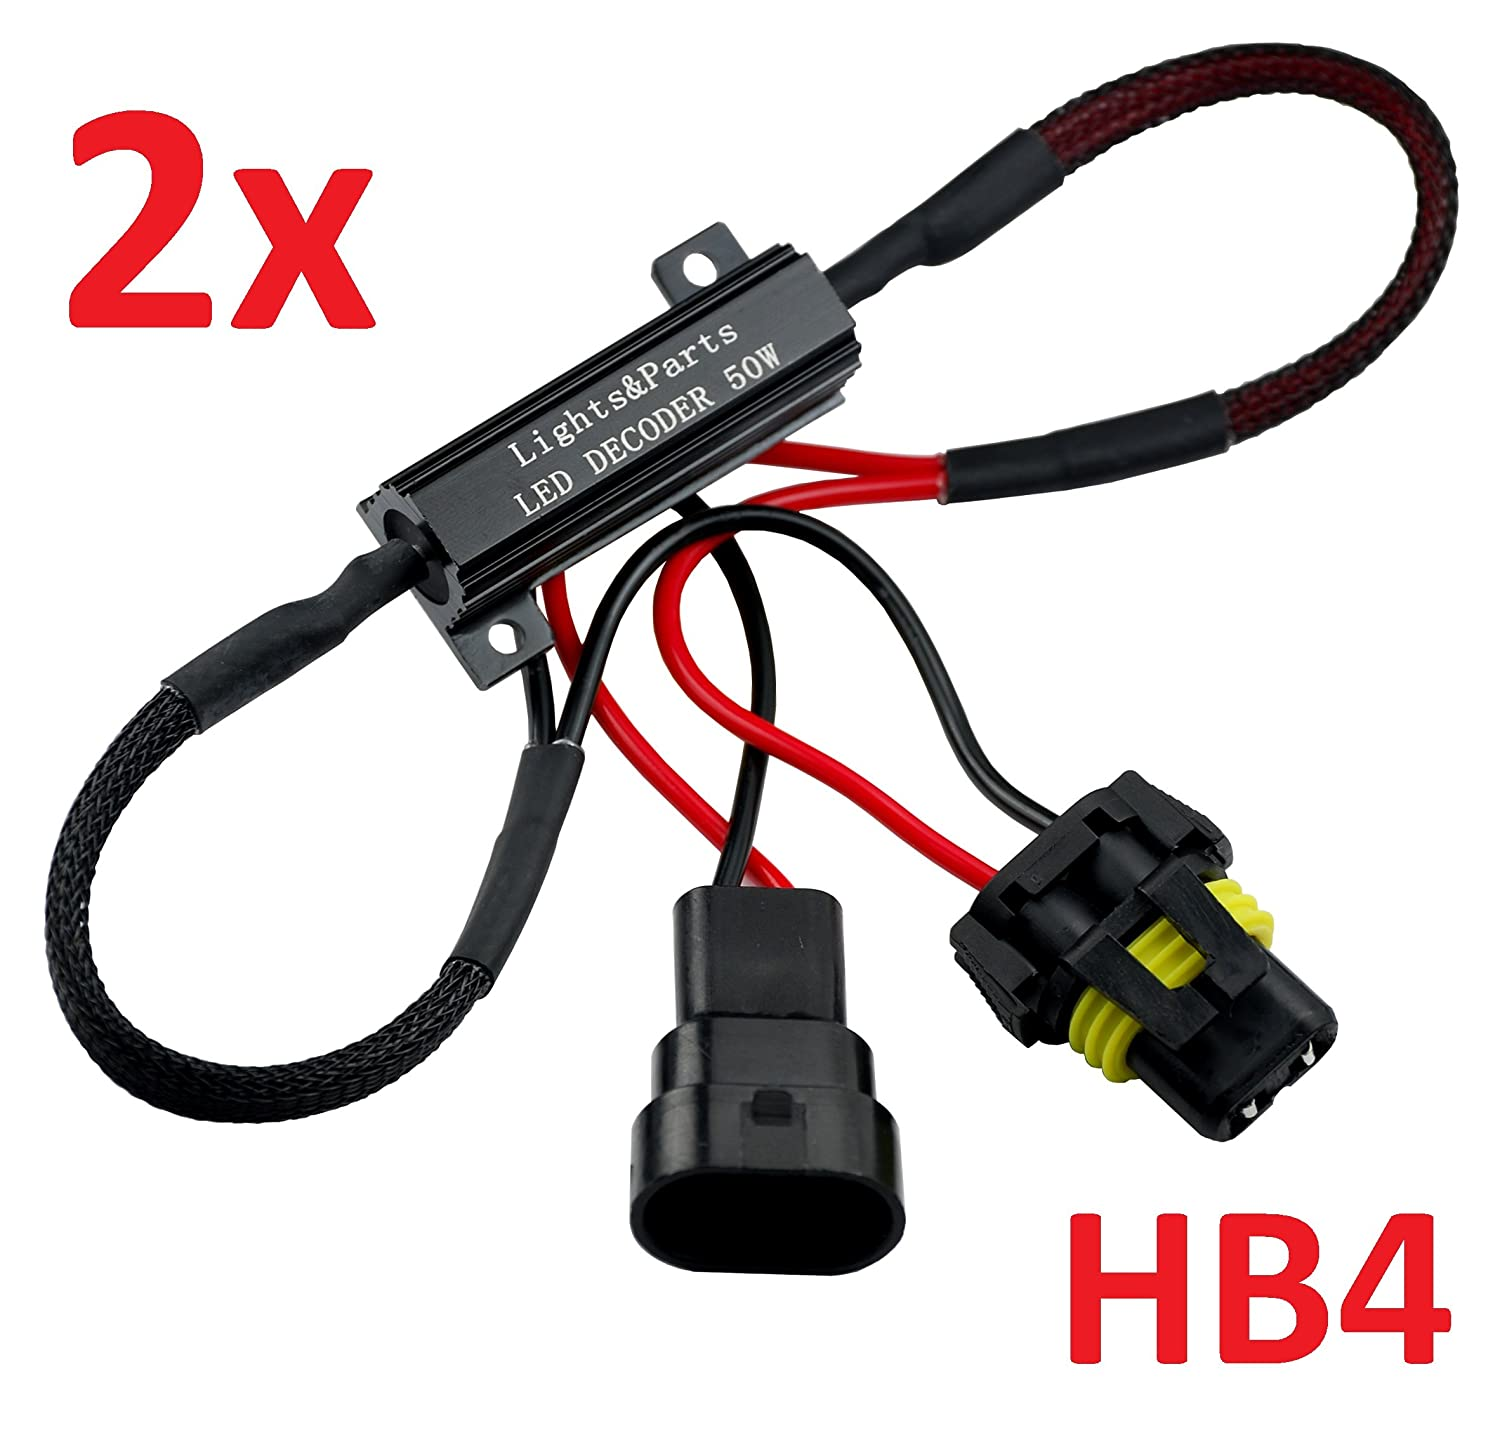 L/&P B541/2pcs HB4/9006/Canbus Plug/&Play load resistor for LED SMD lamps without error message